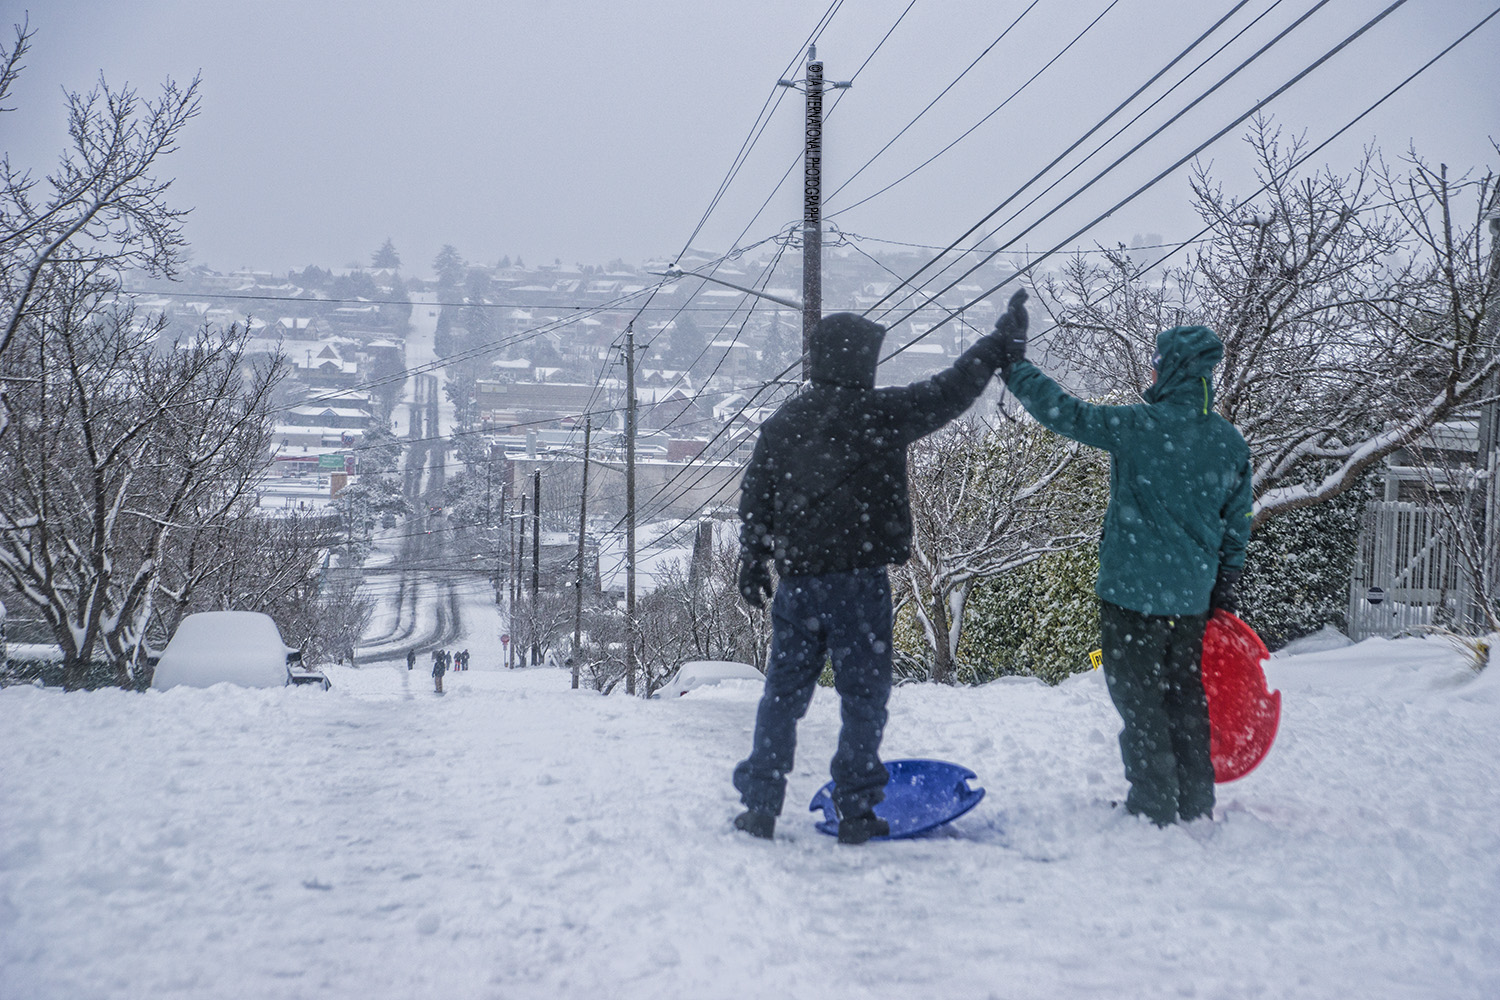 "Minutes before sledding, two friends ""high-five"" each other at the top of the hill on McGraw Street, Magnolia, Seattle (February 13, 2021)."